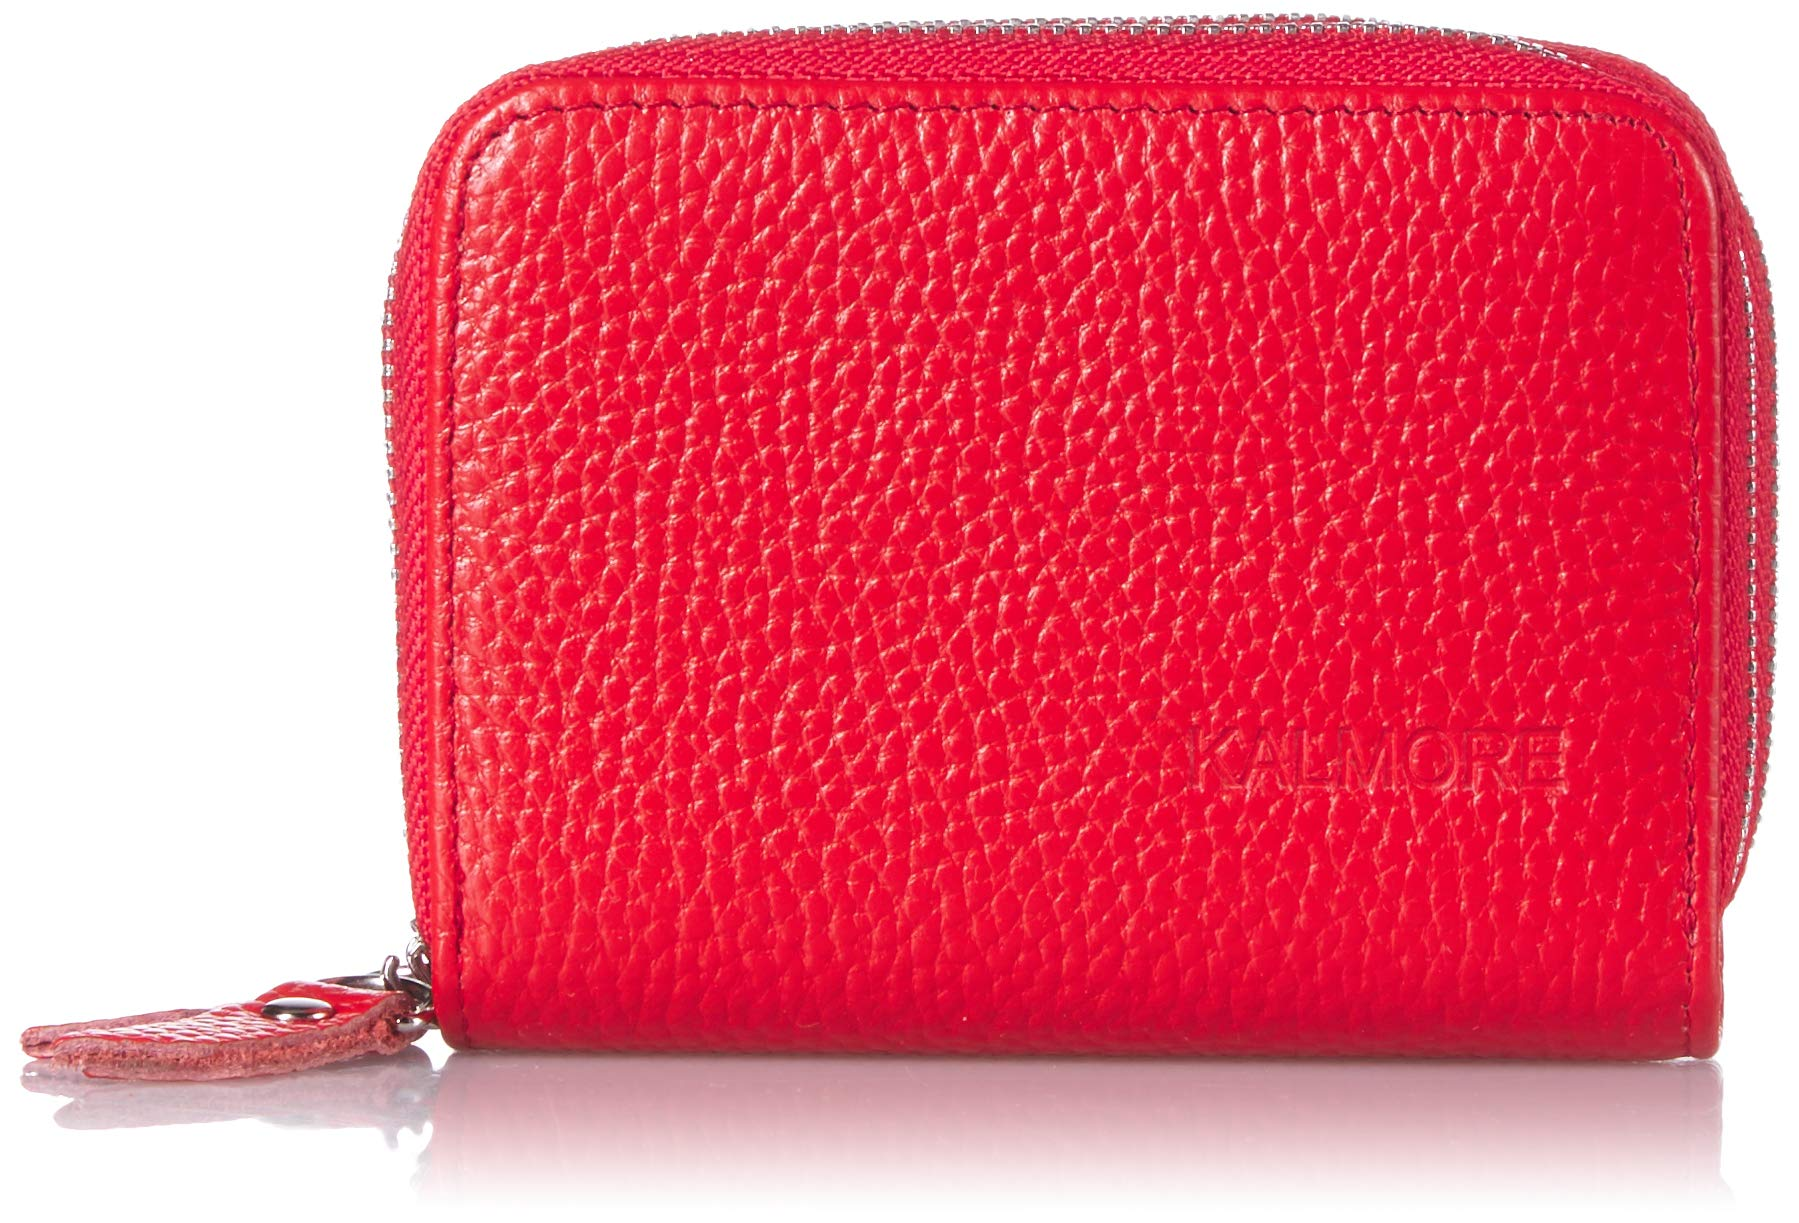 KALMORE Wallets for Women, Red, 4''x3.2''x1.25''